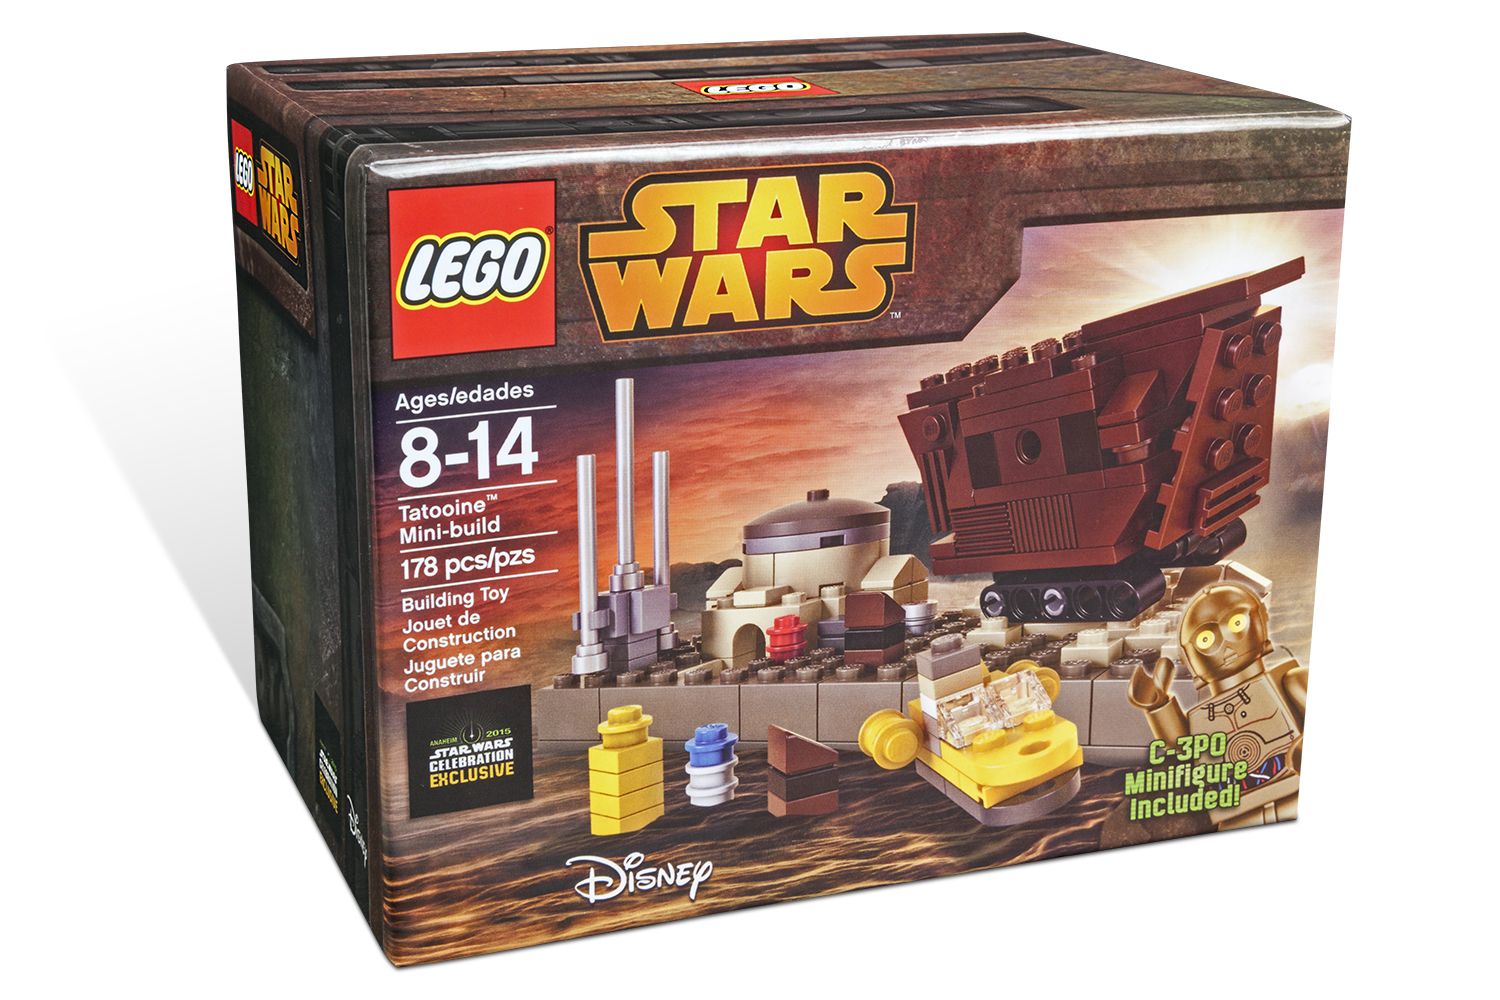 Wars Exclusive Star Lego Swc – For Sneak Peek mvN0wOy8n